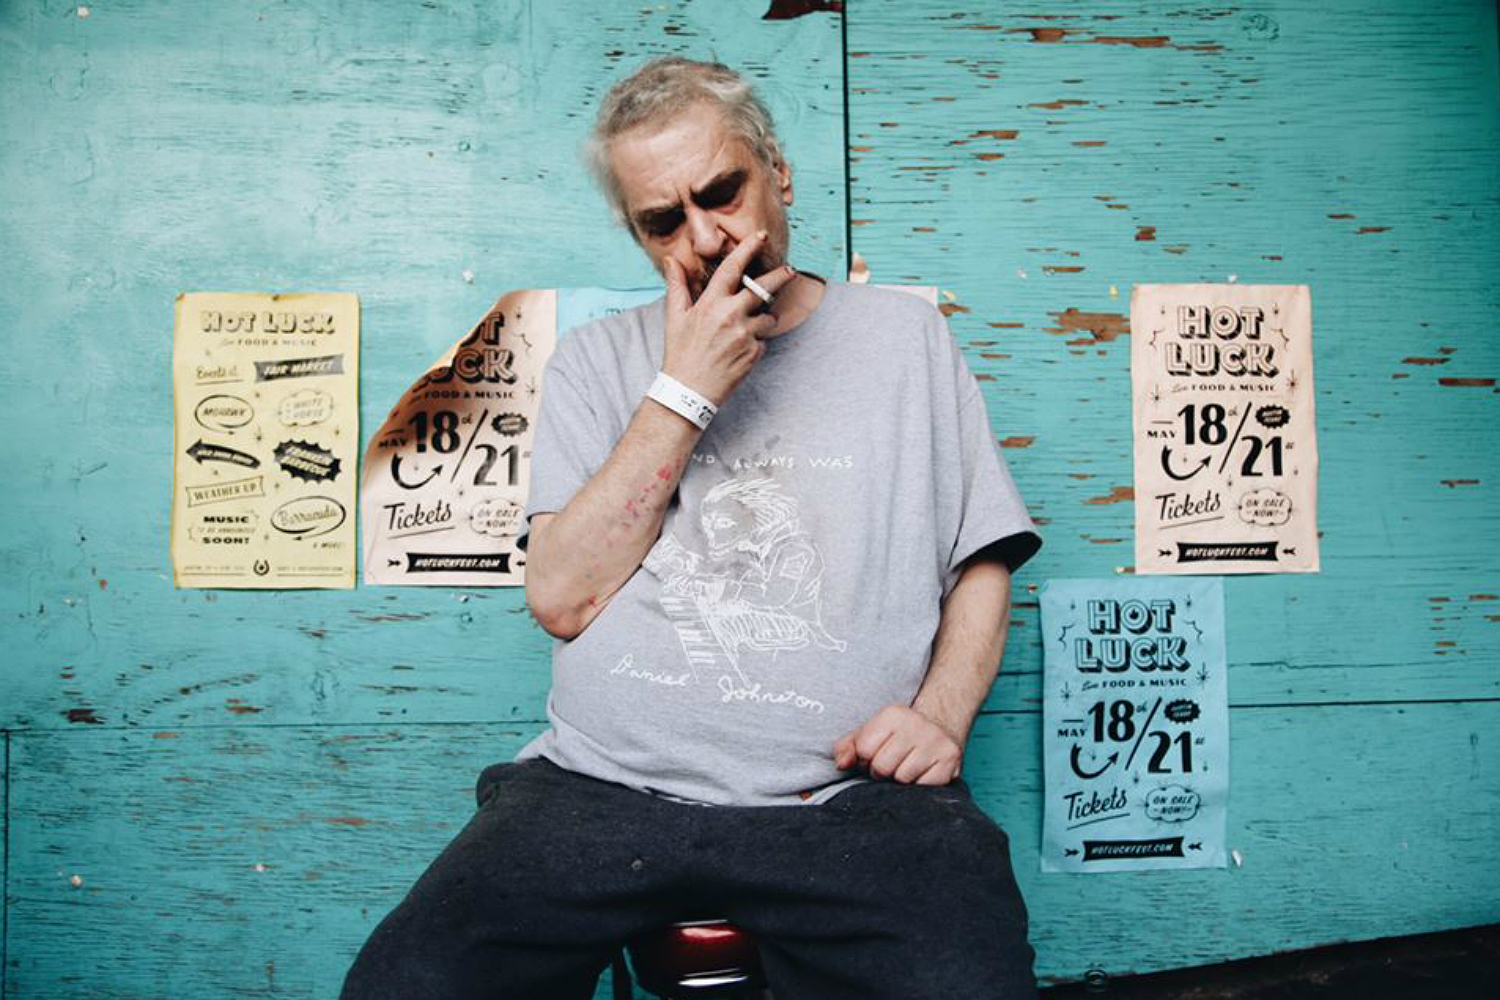 The music world reacts to the passing of genius Daniel Johnston